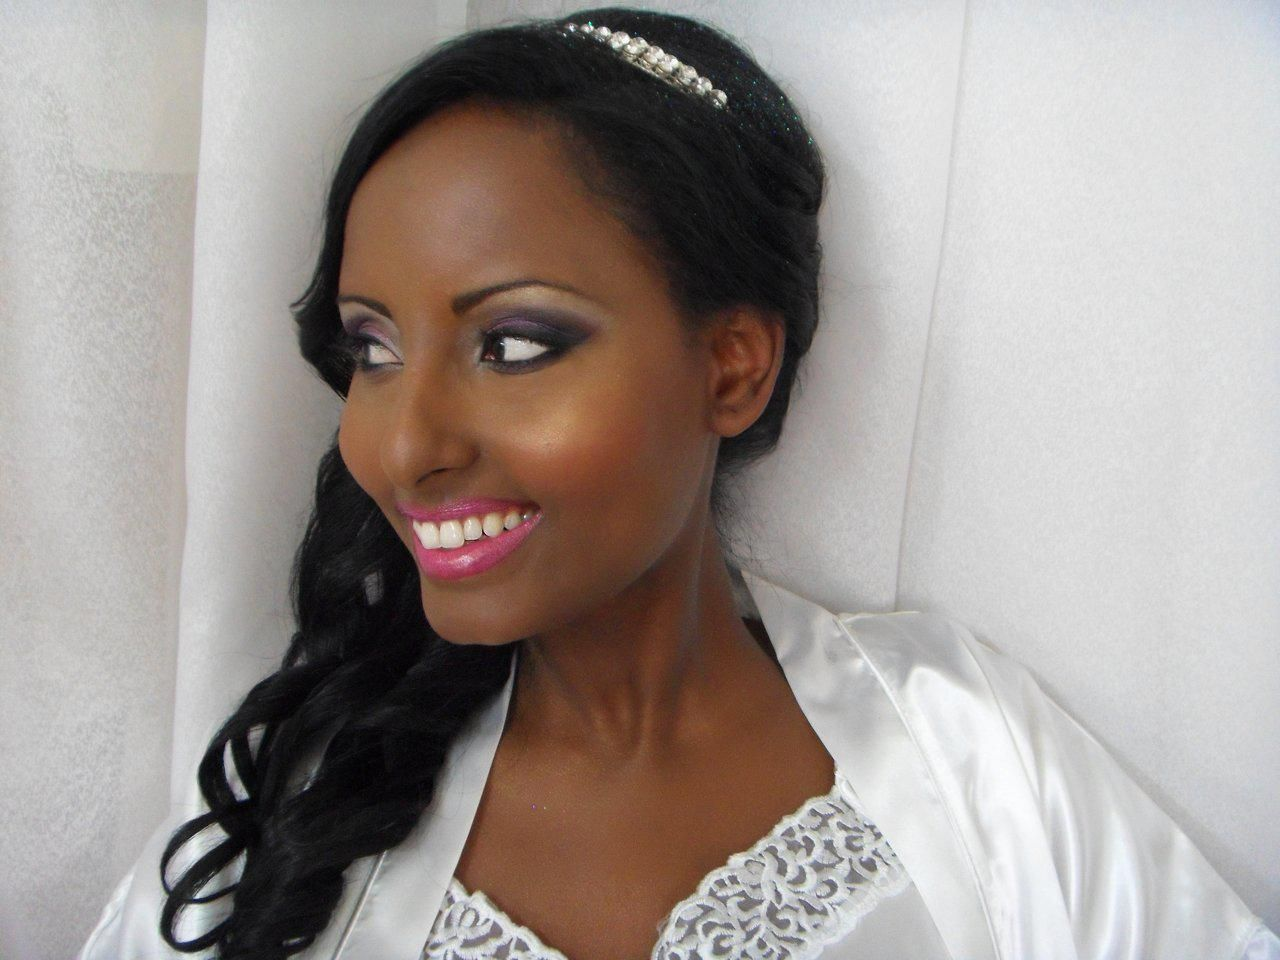 Ethiopian Wedding Makeup | Bridal makeup israel rehovot ...